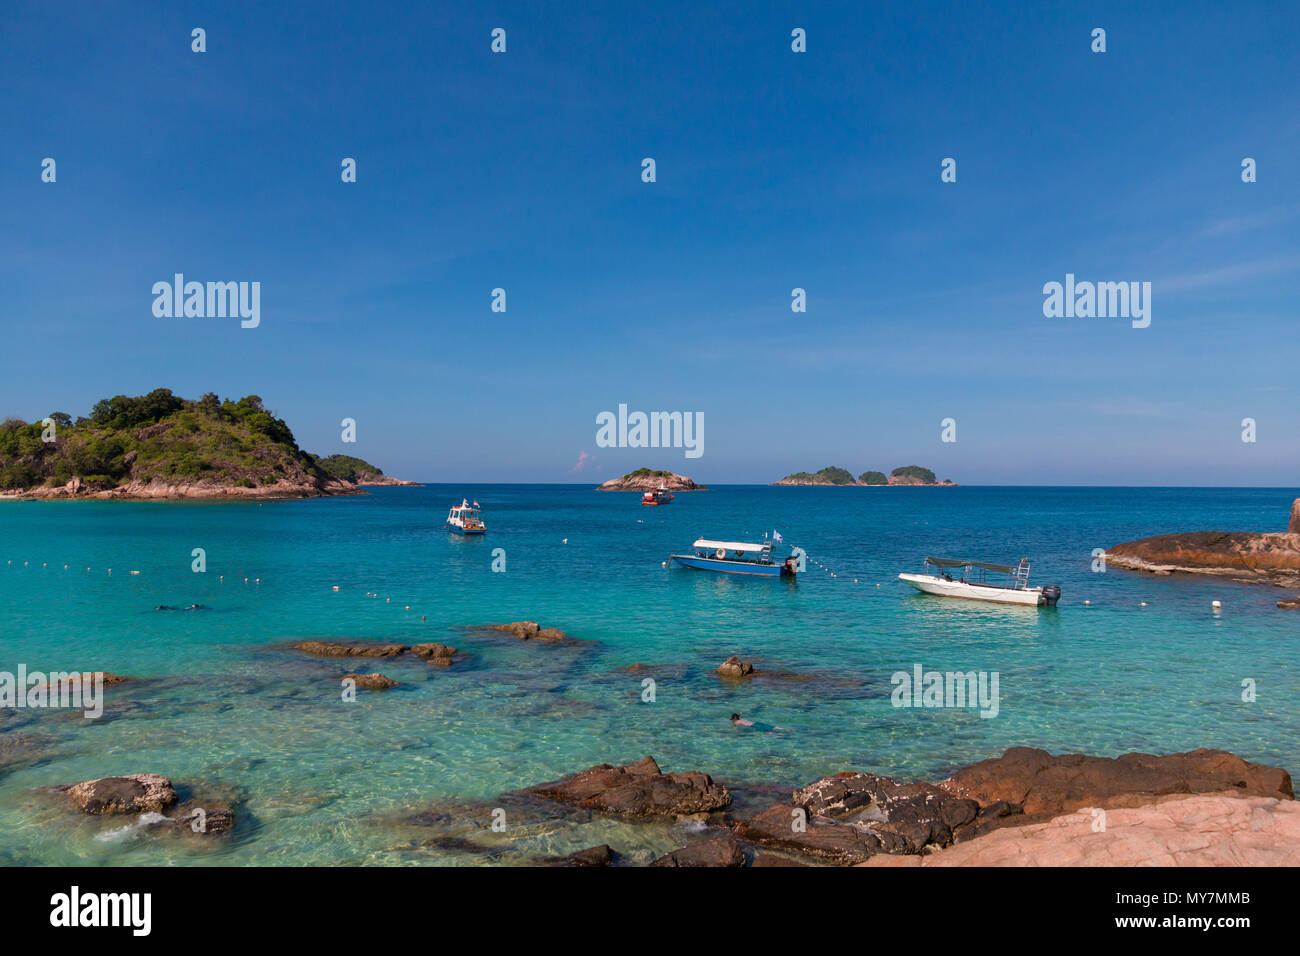 A nice view from the rocky part of Long Beach (Pasir Panjang) towards the South China Sea with the two islands, Pulau Paku Kecil and Pulau Lima. - Stock Image